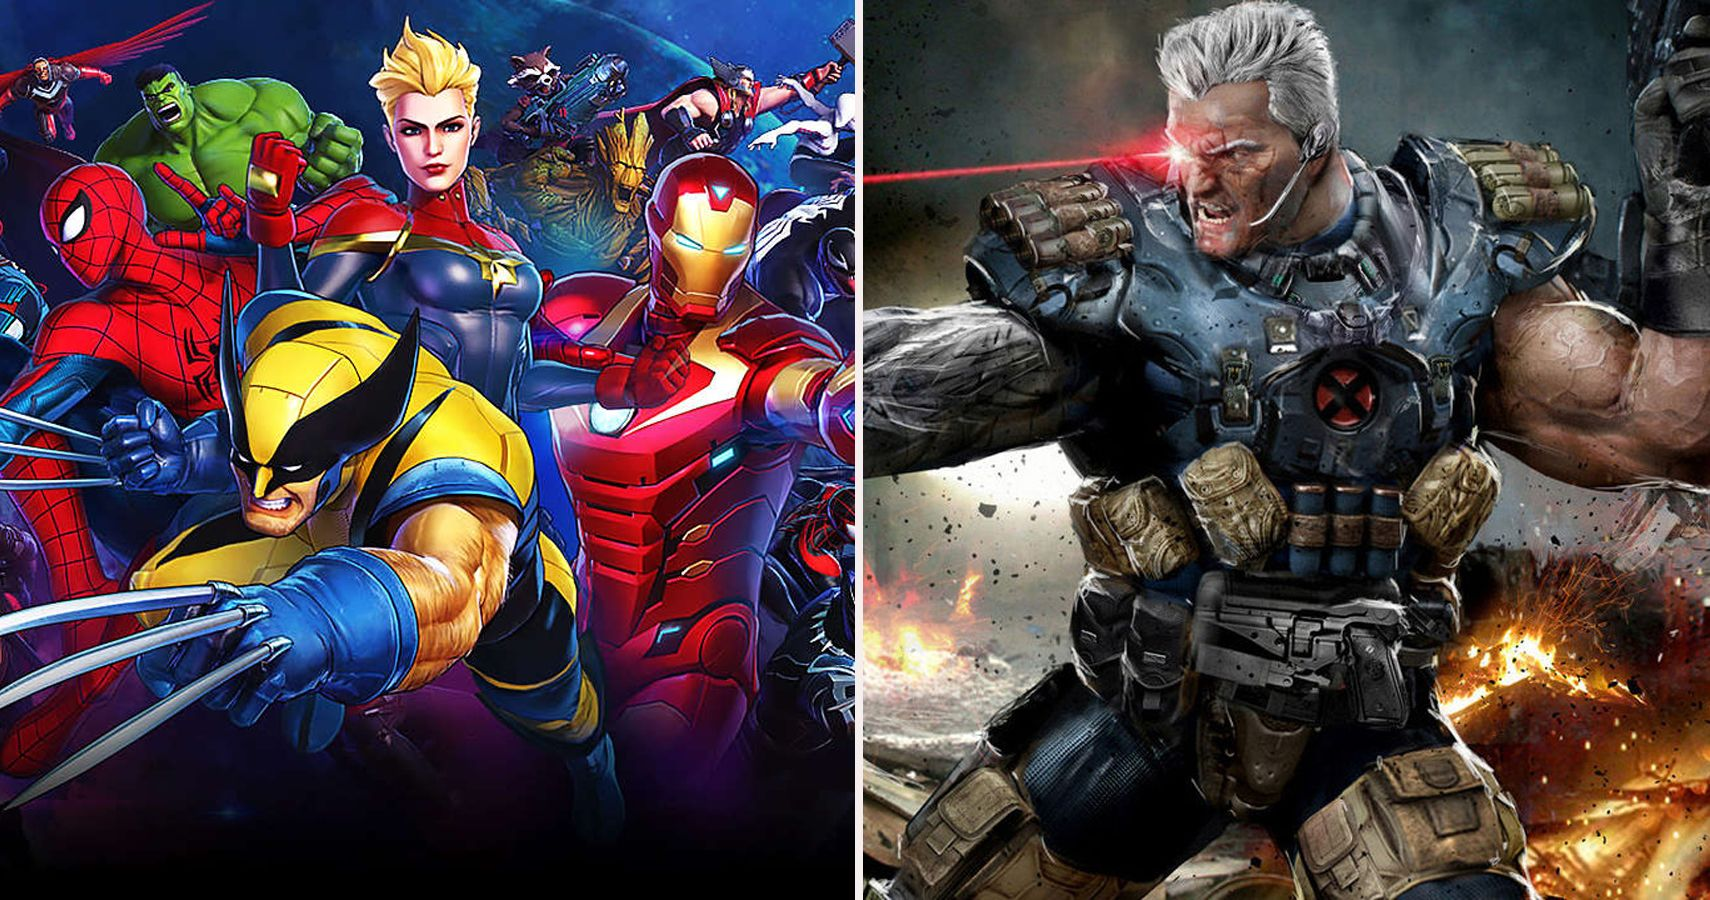 10 Characters We Would Love To See In Ultimate Alliance 4